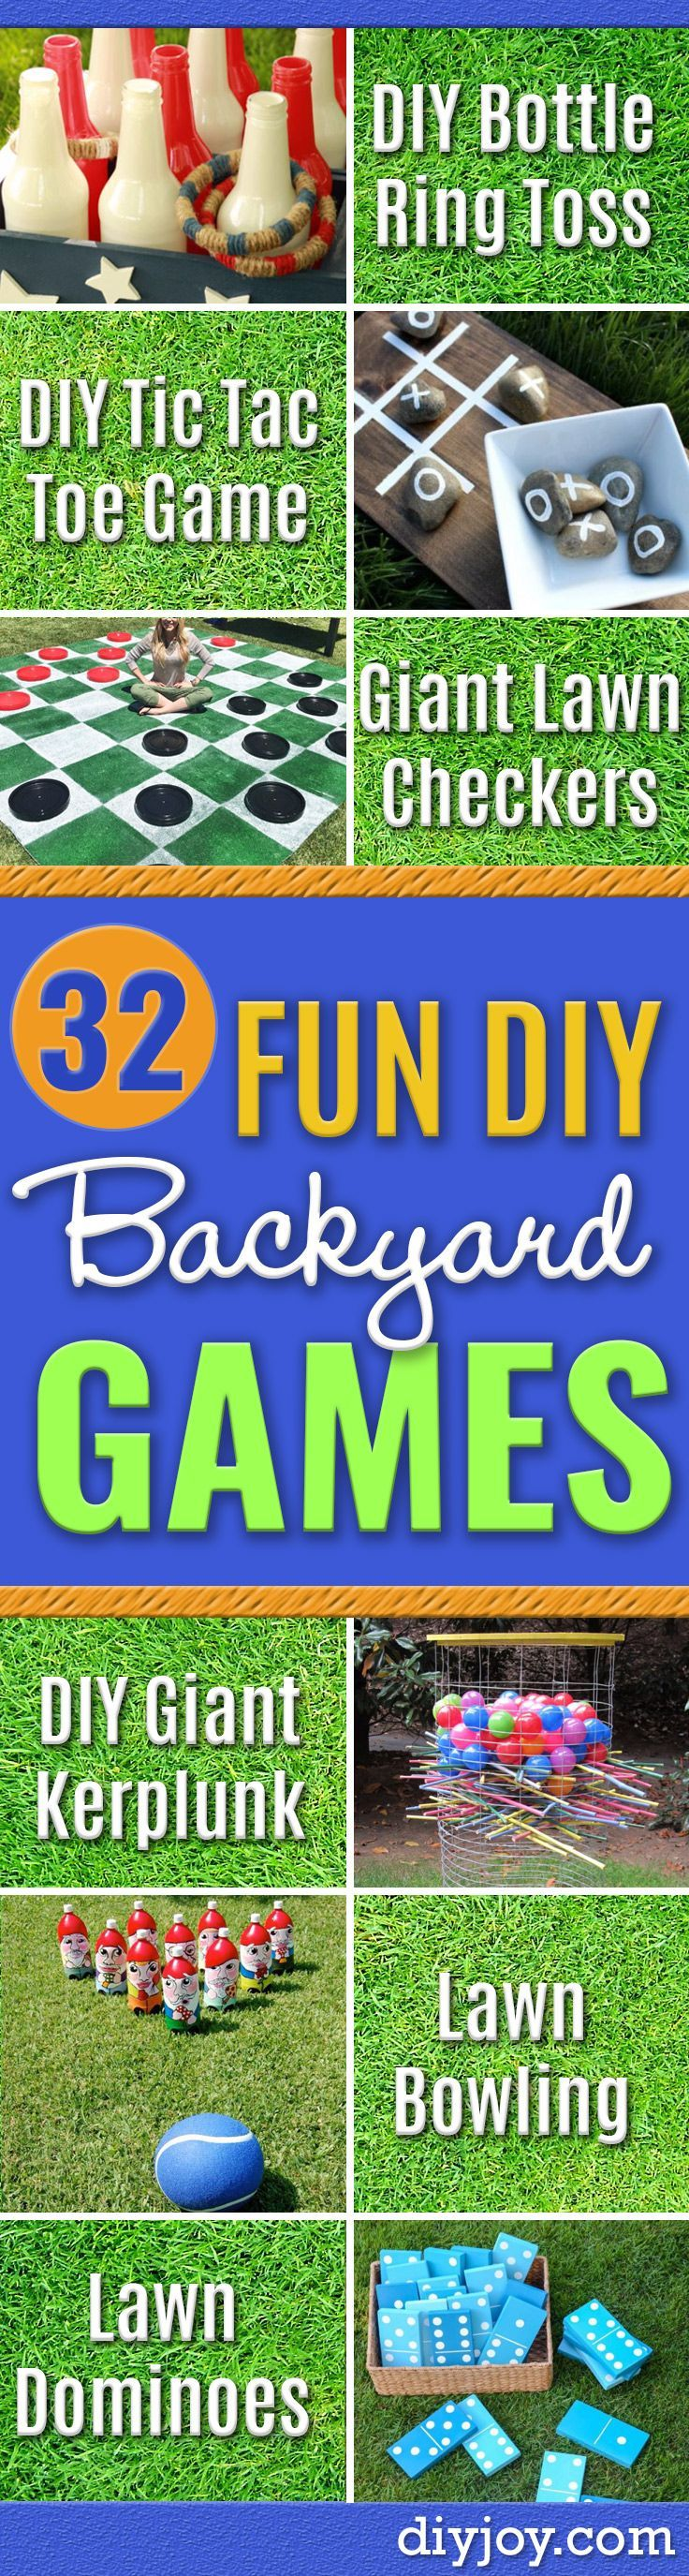 Best DIY Backyard Games - Cool DIY Yard Game Ideas for Adults, Teens and Kids - Easy Tutorials for Cornhole, Washers, Jenga, Tic Tac Toe and Horseshoes - Cool Projects for Outdoor Parties and Summer Family Fun Outside http://diyjoy.com/diy-backyard-games